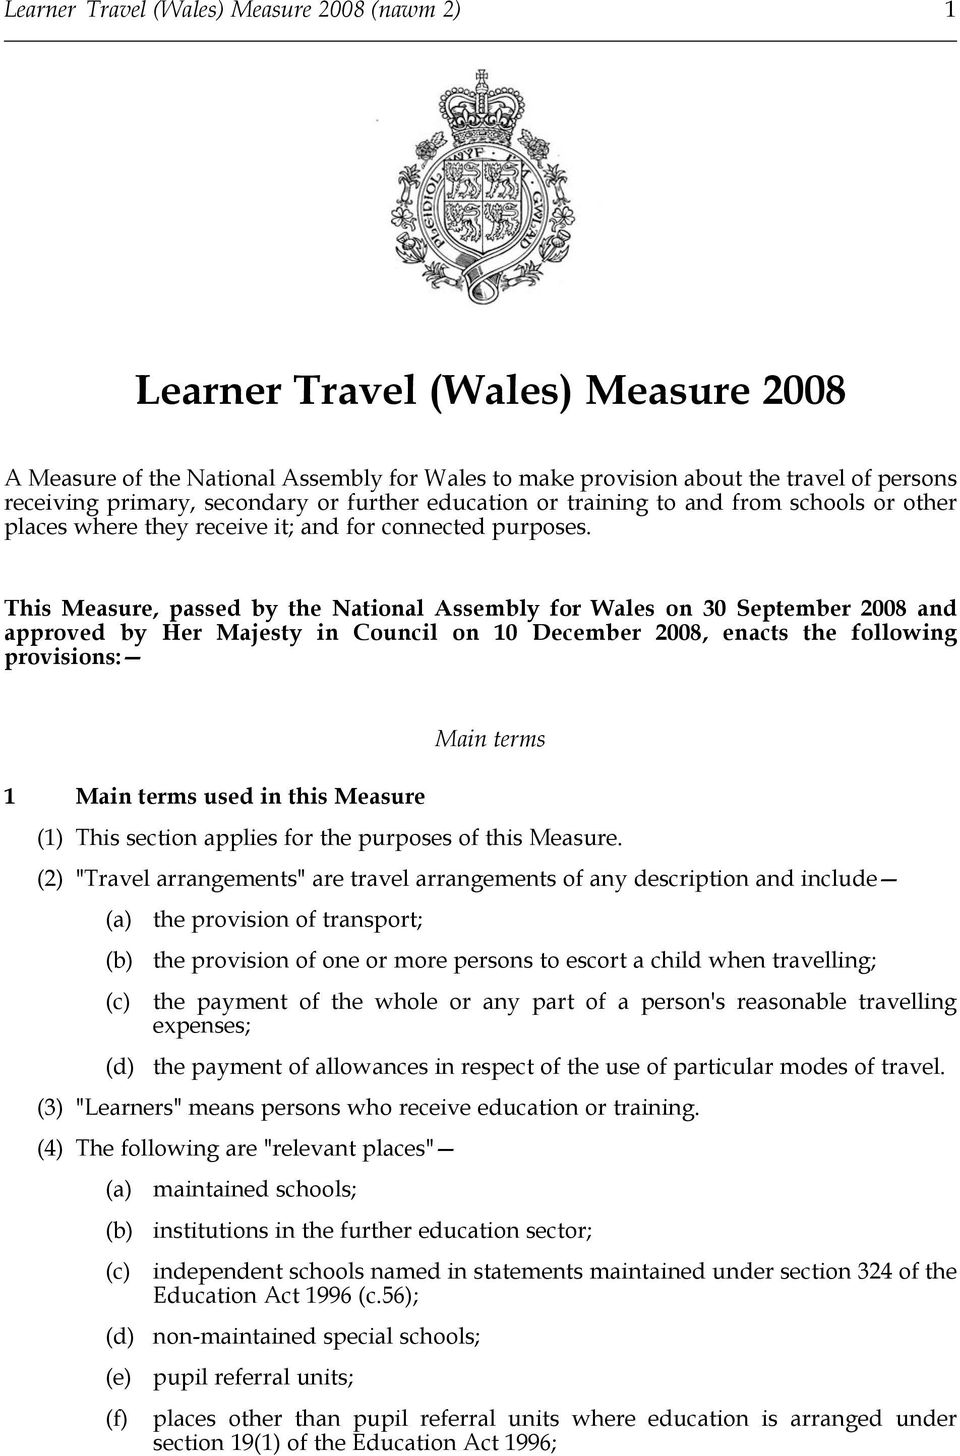 This Measure, passed by the National Assembly for Wales on 30 September 2008 and approved by Her Majesty in Council on 10 December 2008, enacts the following provisions: 1 Main terms used in this